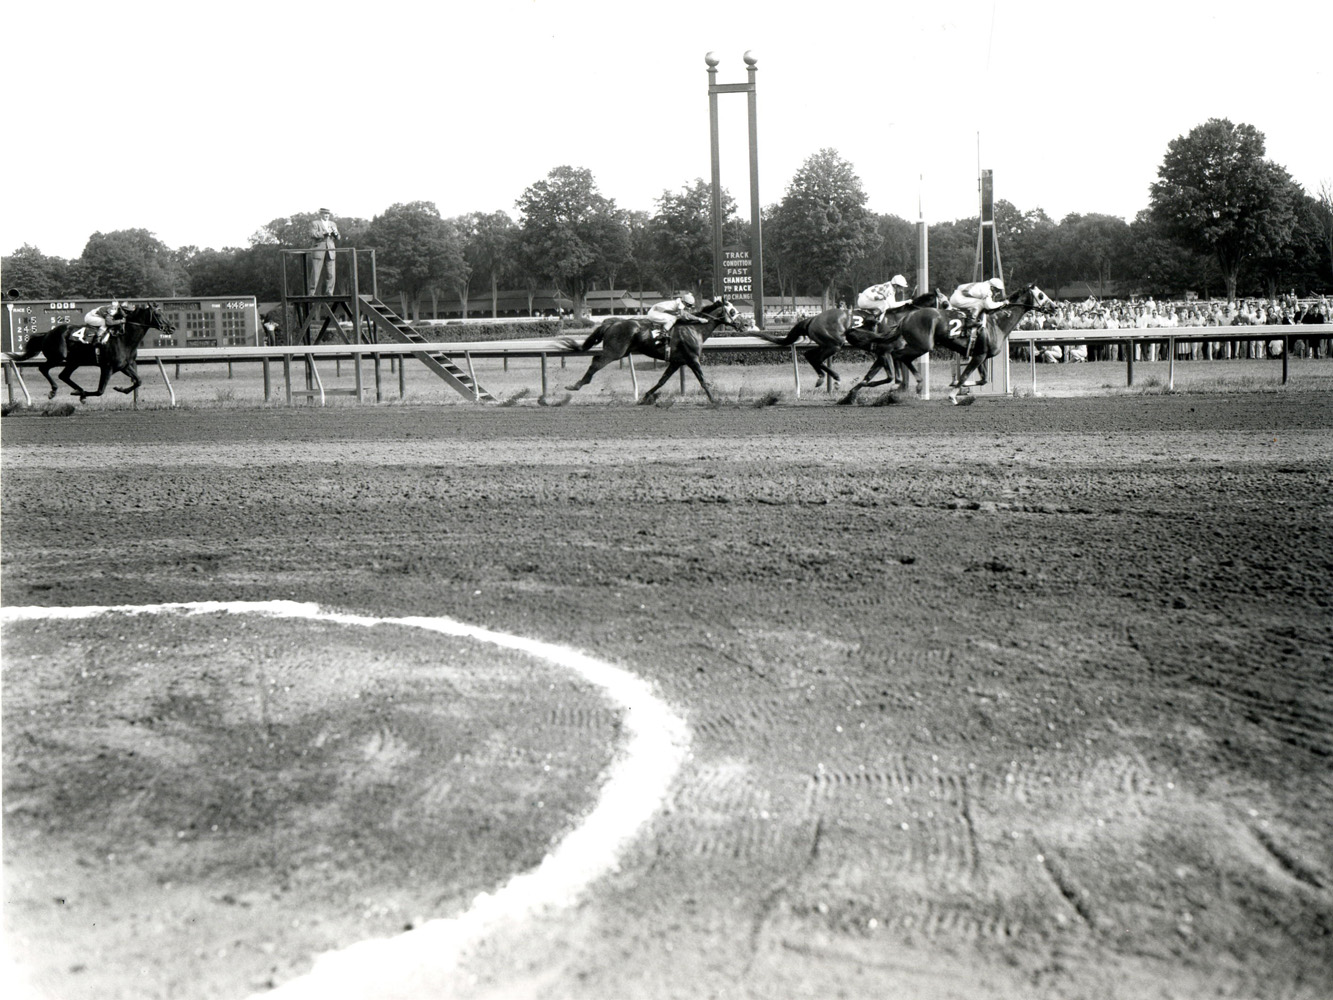 Manny Ycaza and Sword Dancer win the 1959 Travers Stakes at Saratoga (Keeneland Library Morgan Collection/Museum Collection)